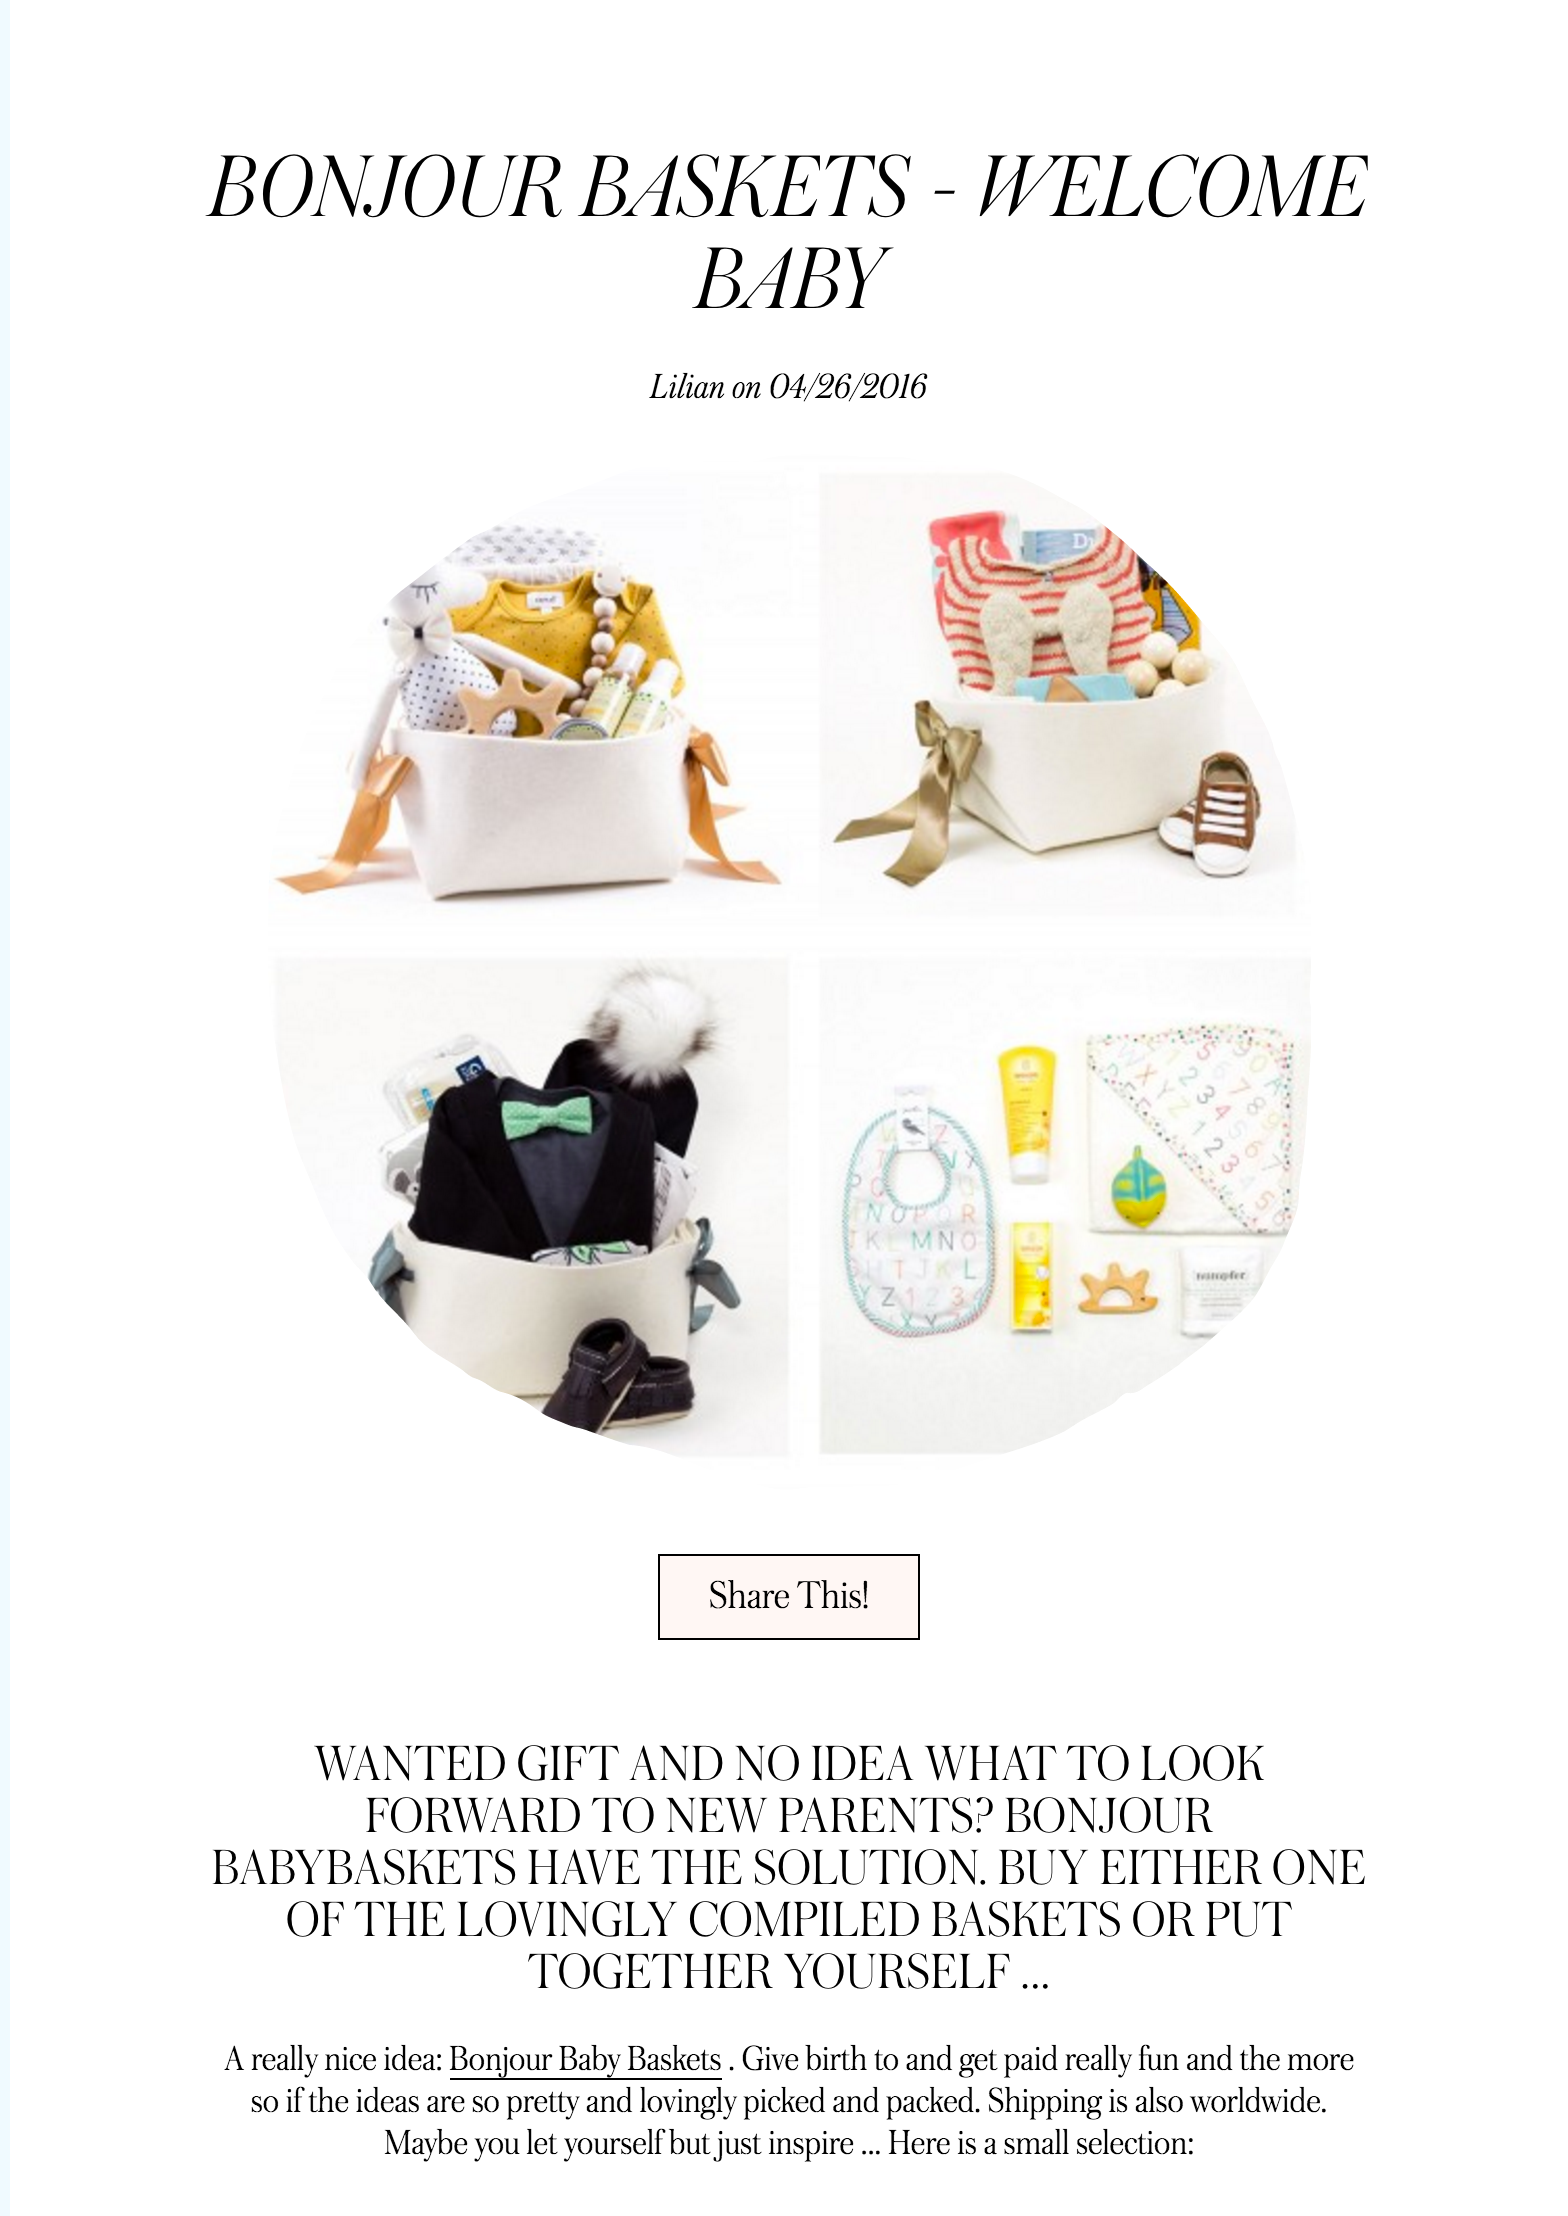 Bonjour Baby Baskets in Best Welcome Home Baby Gifts